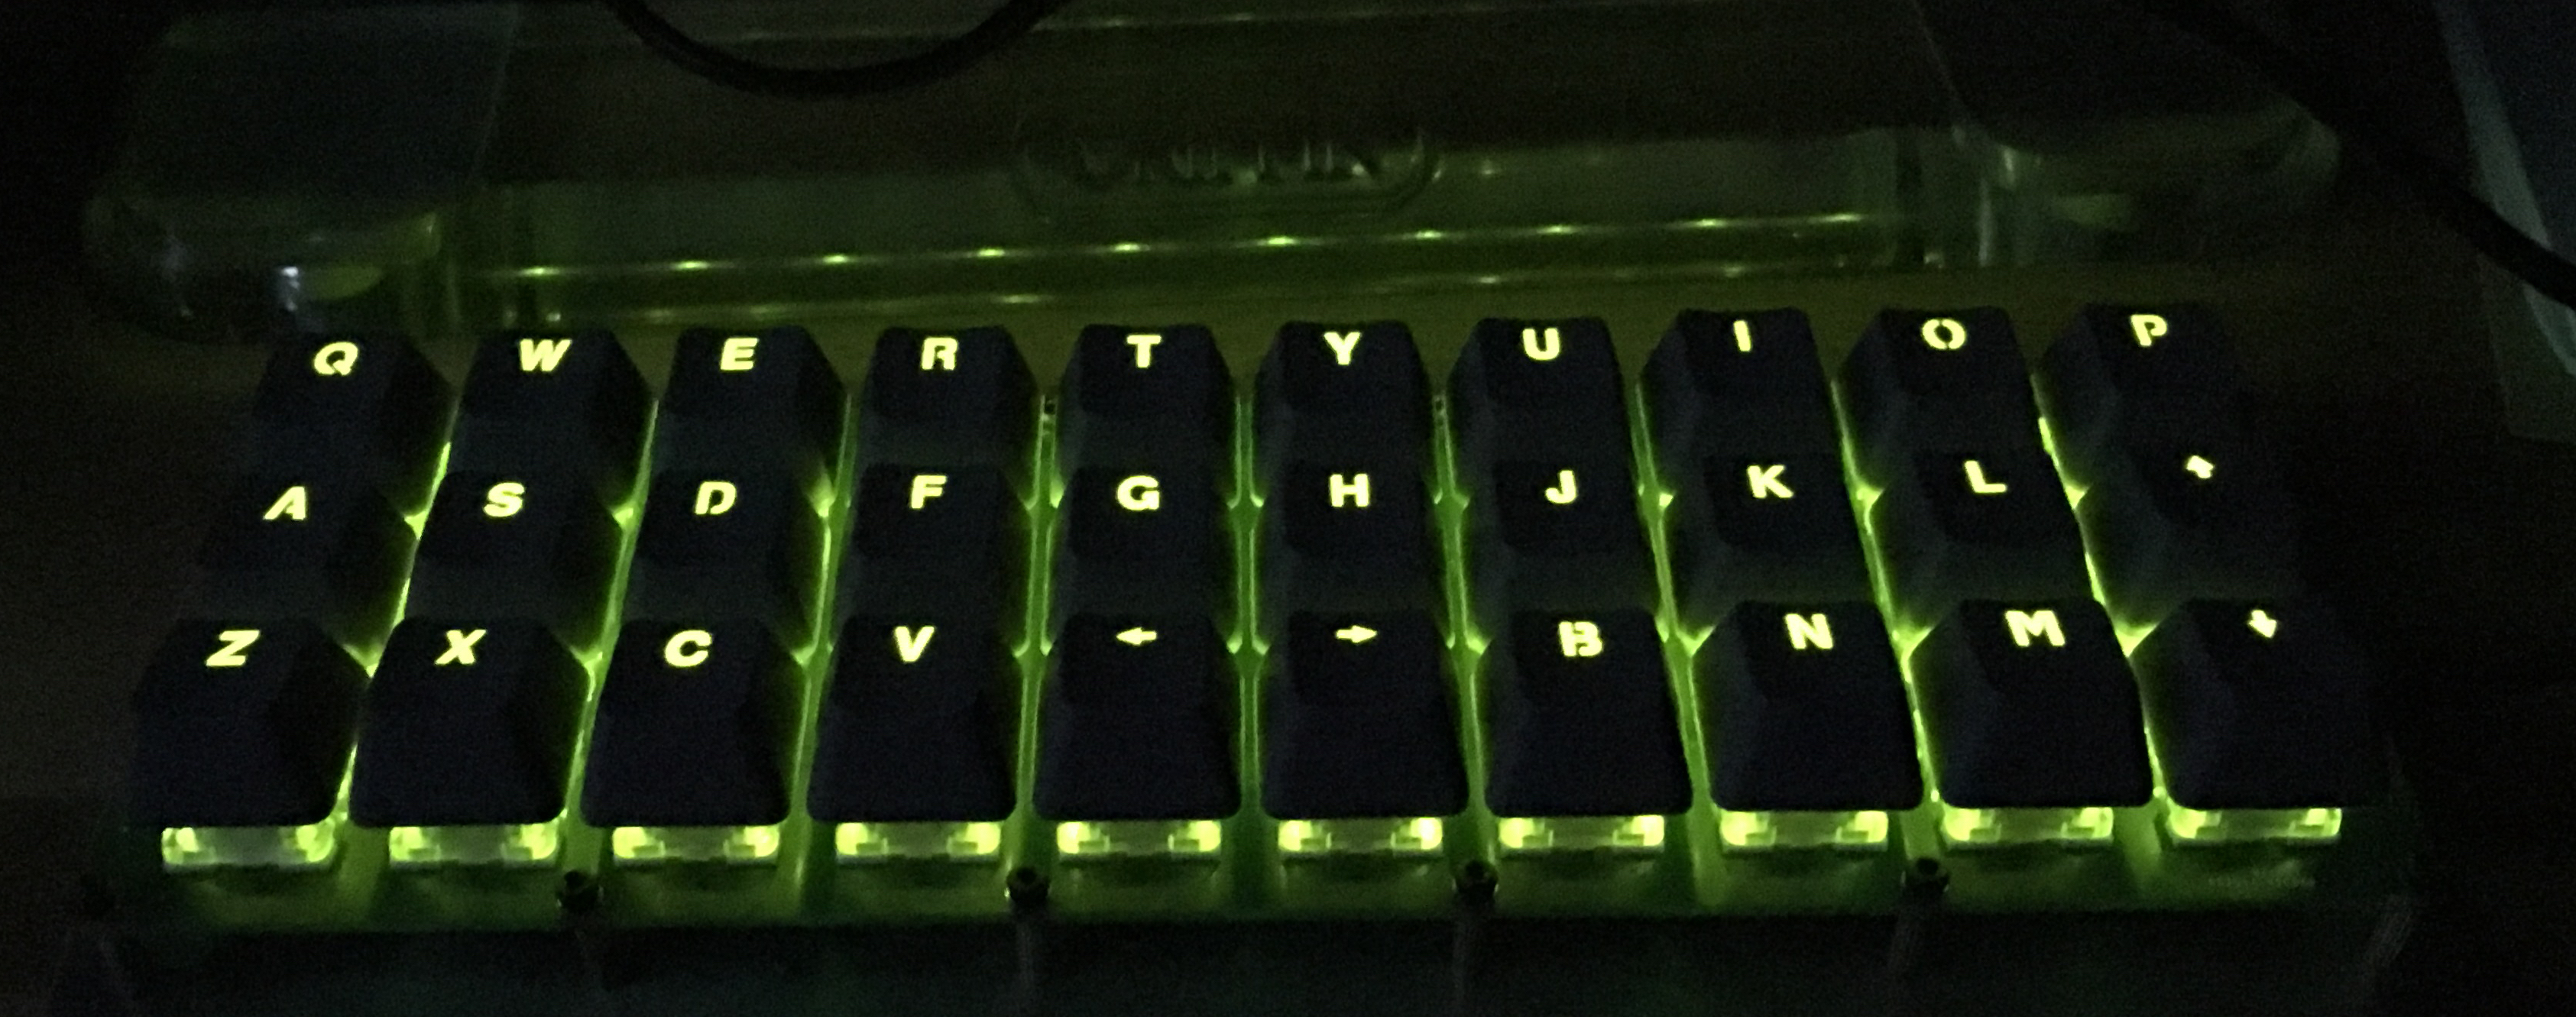 Gherkin with backlight